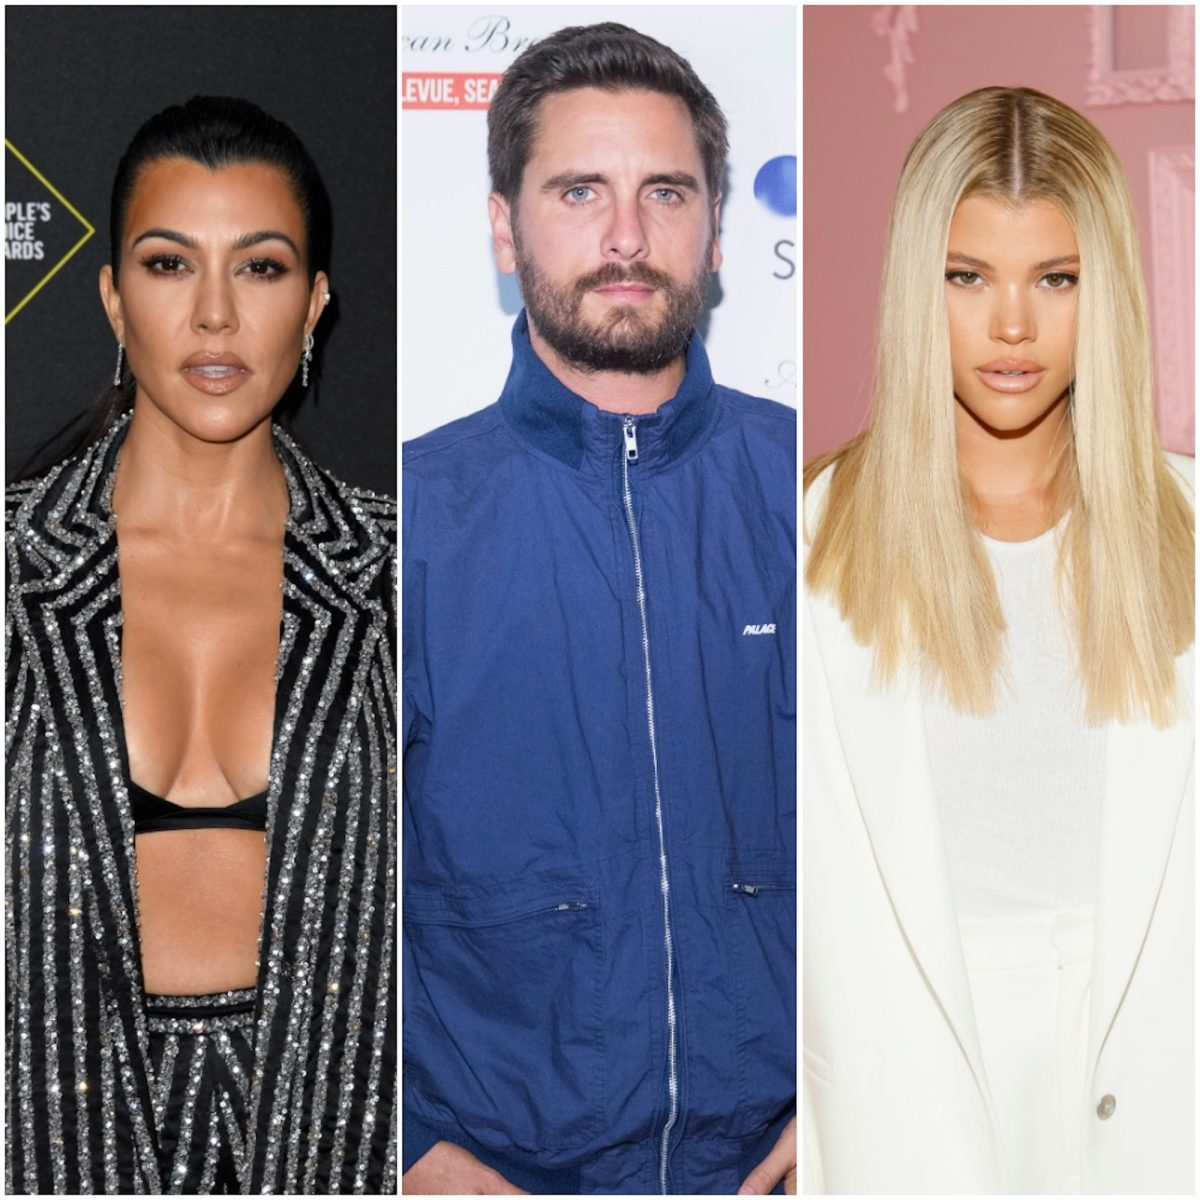 Kourtney Kardashian, Scott Disick, and Sofia Richie